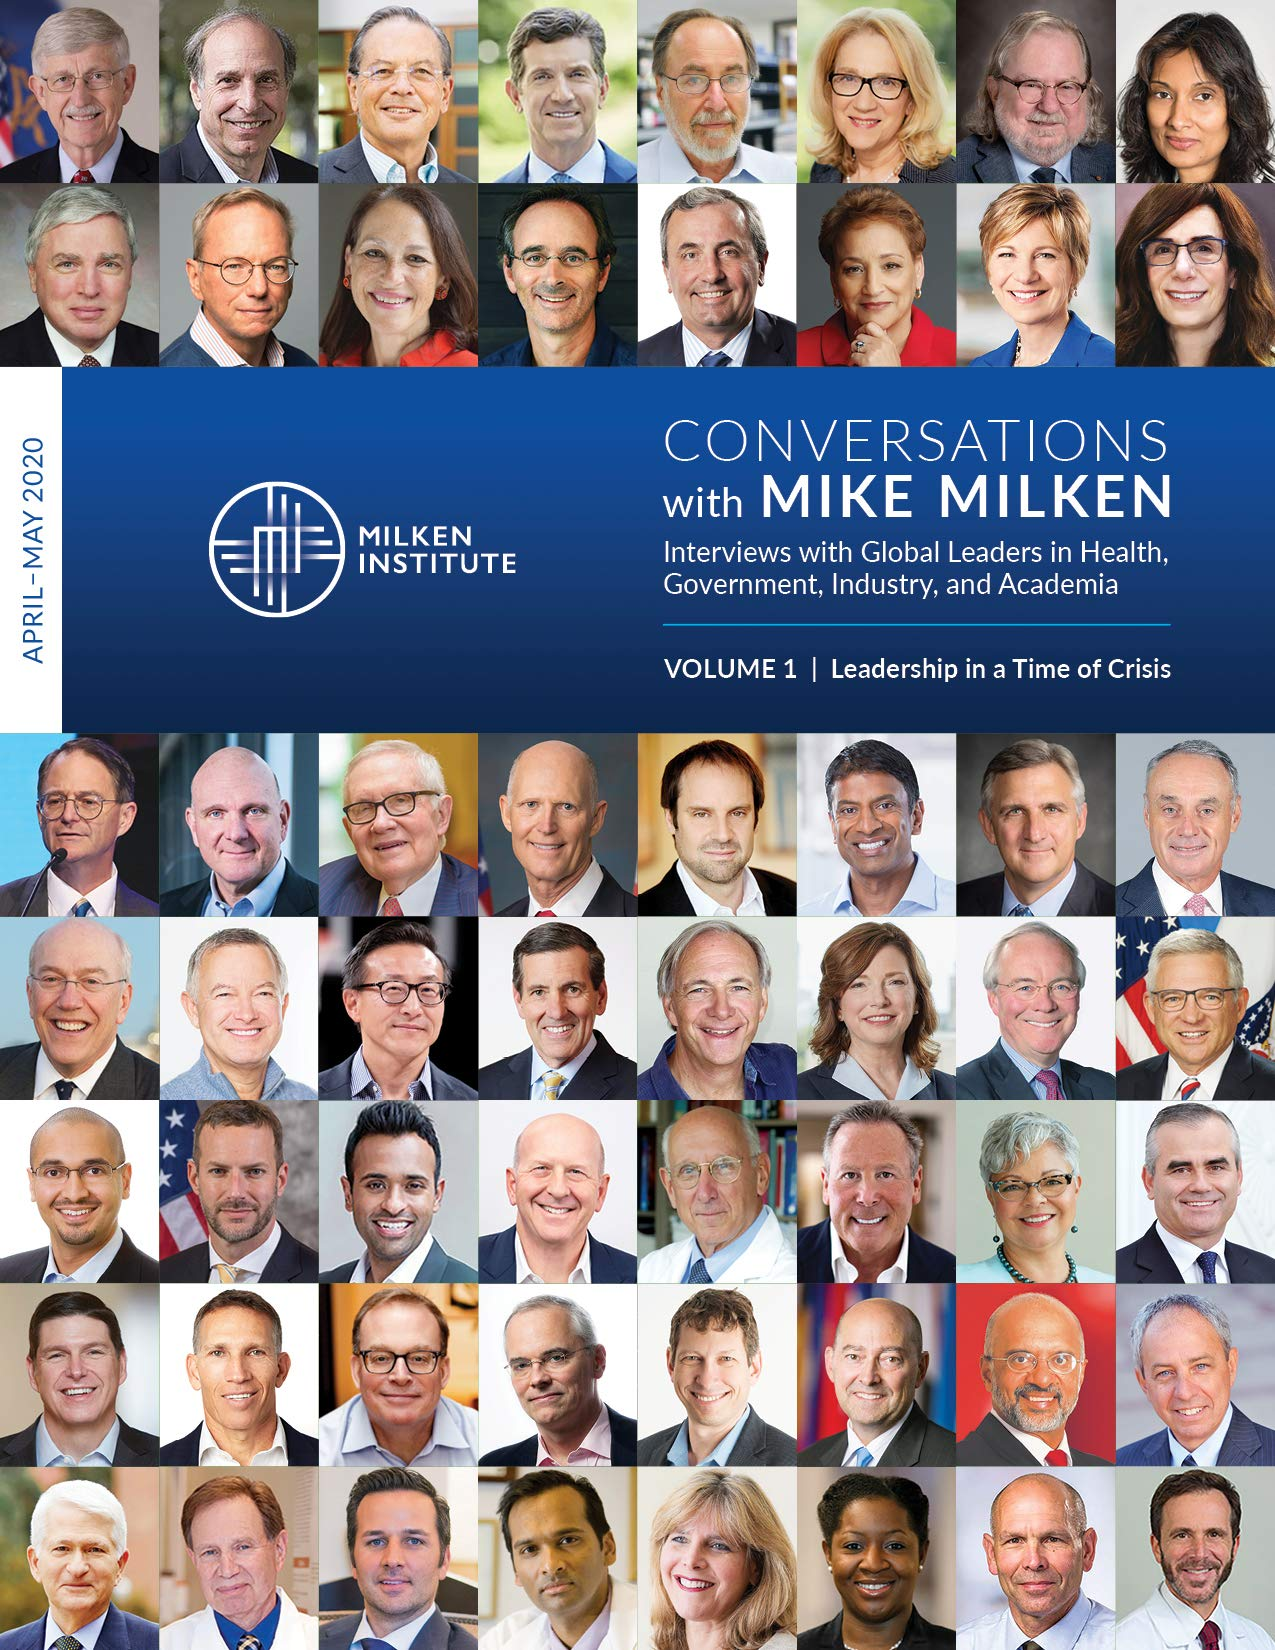 Conversations with Mike Milken, Volume 1: Leadership in a Time of Crisis: Interviews with Global Leaders in Health, Government, Industry, and Academia